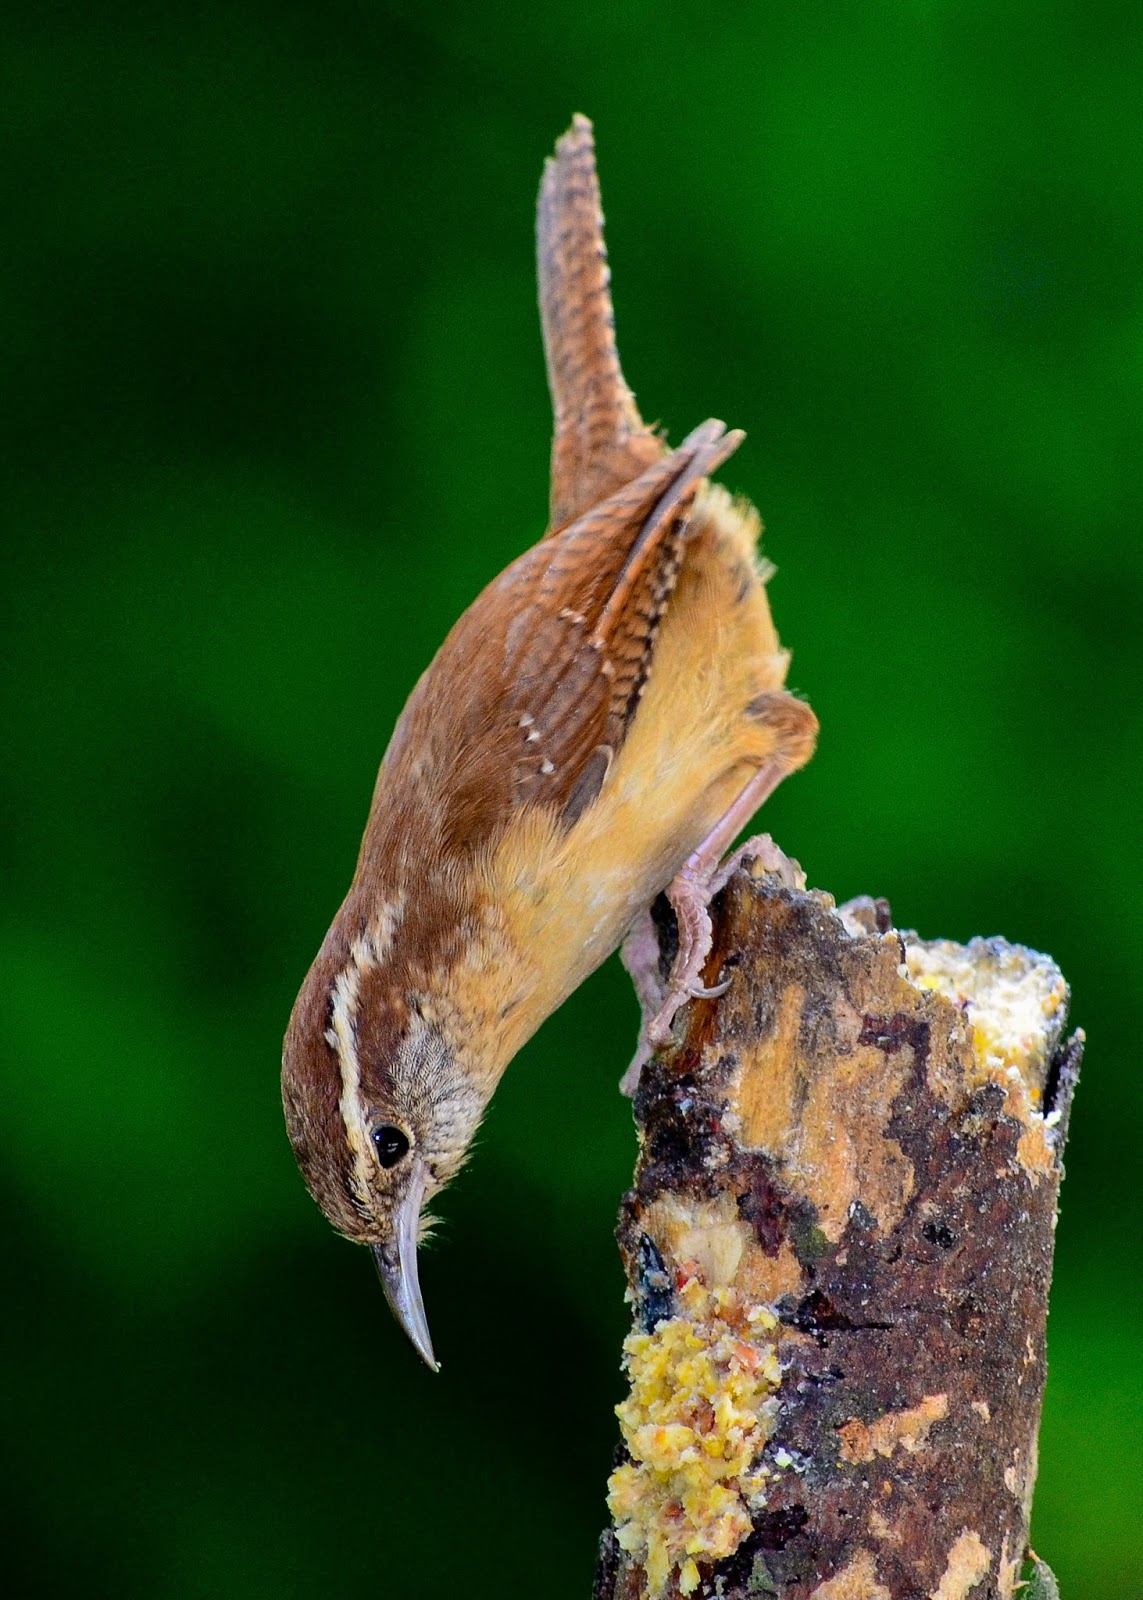 Image of a jenny or house wren.